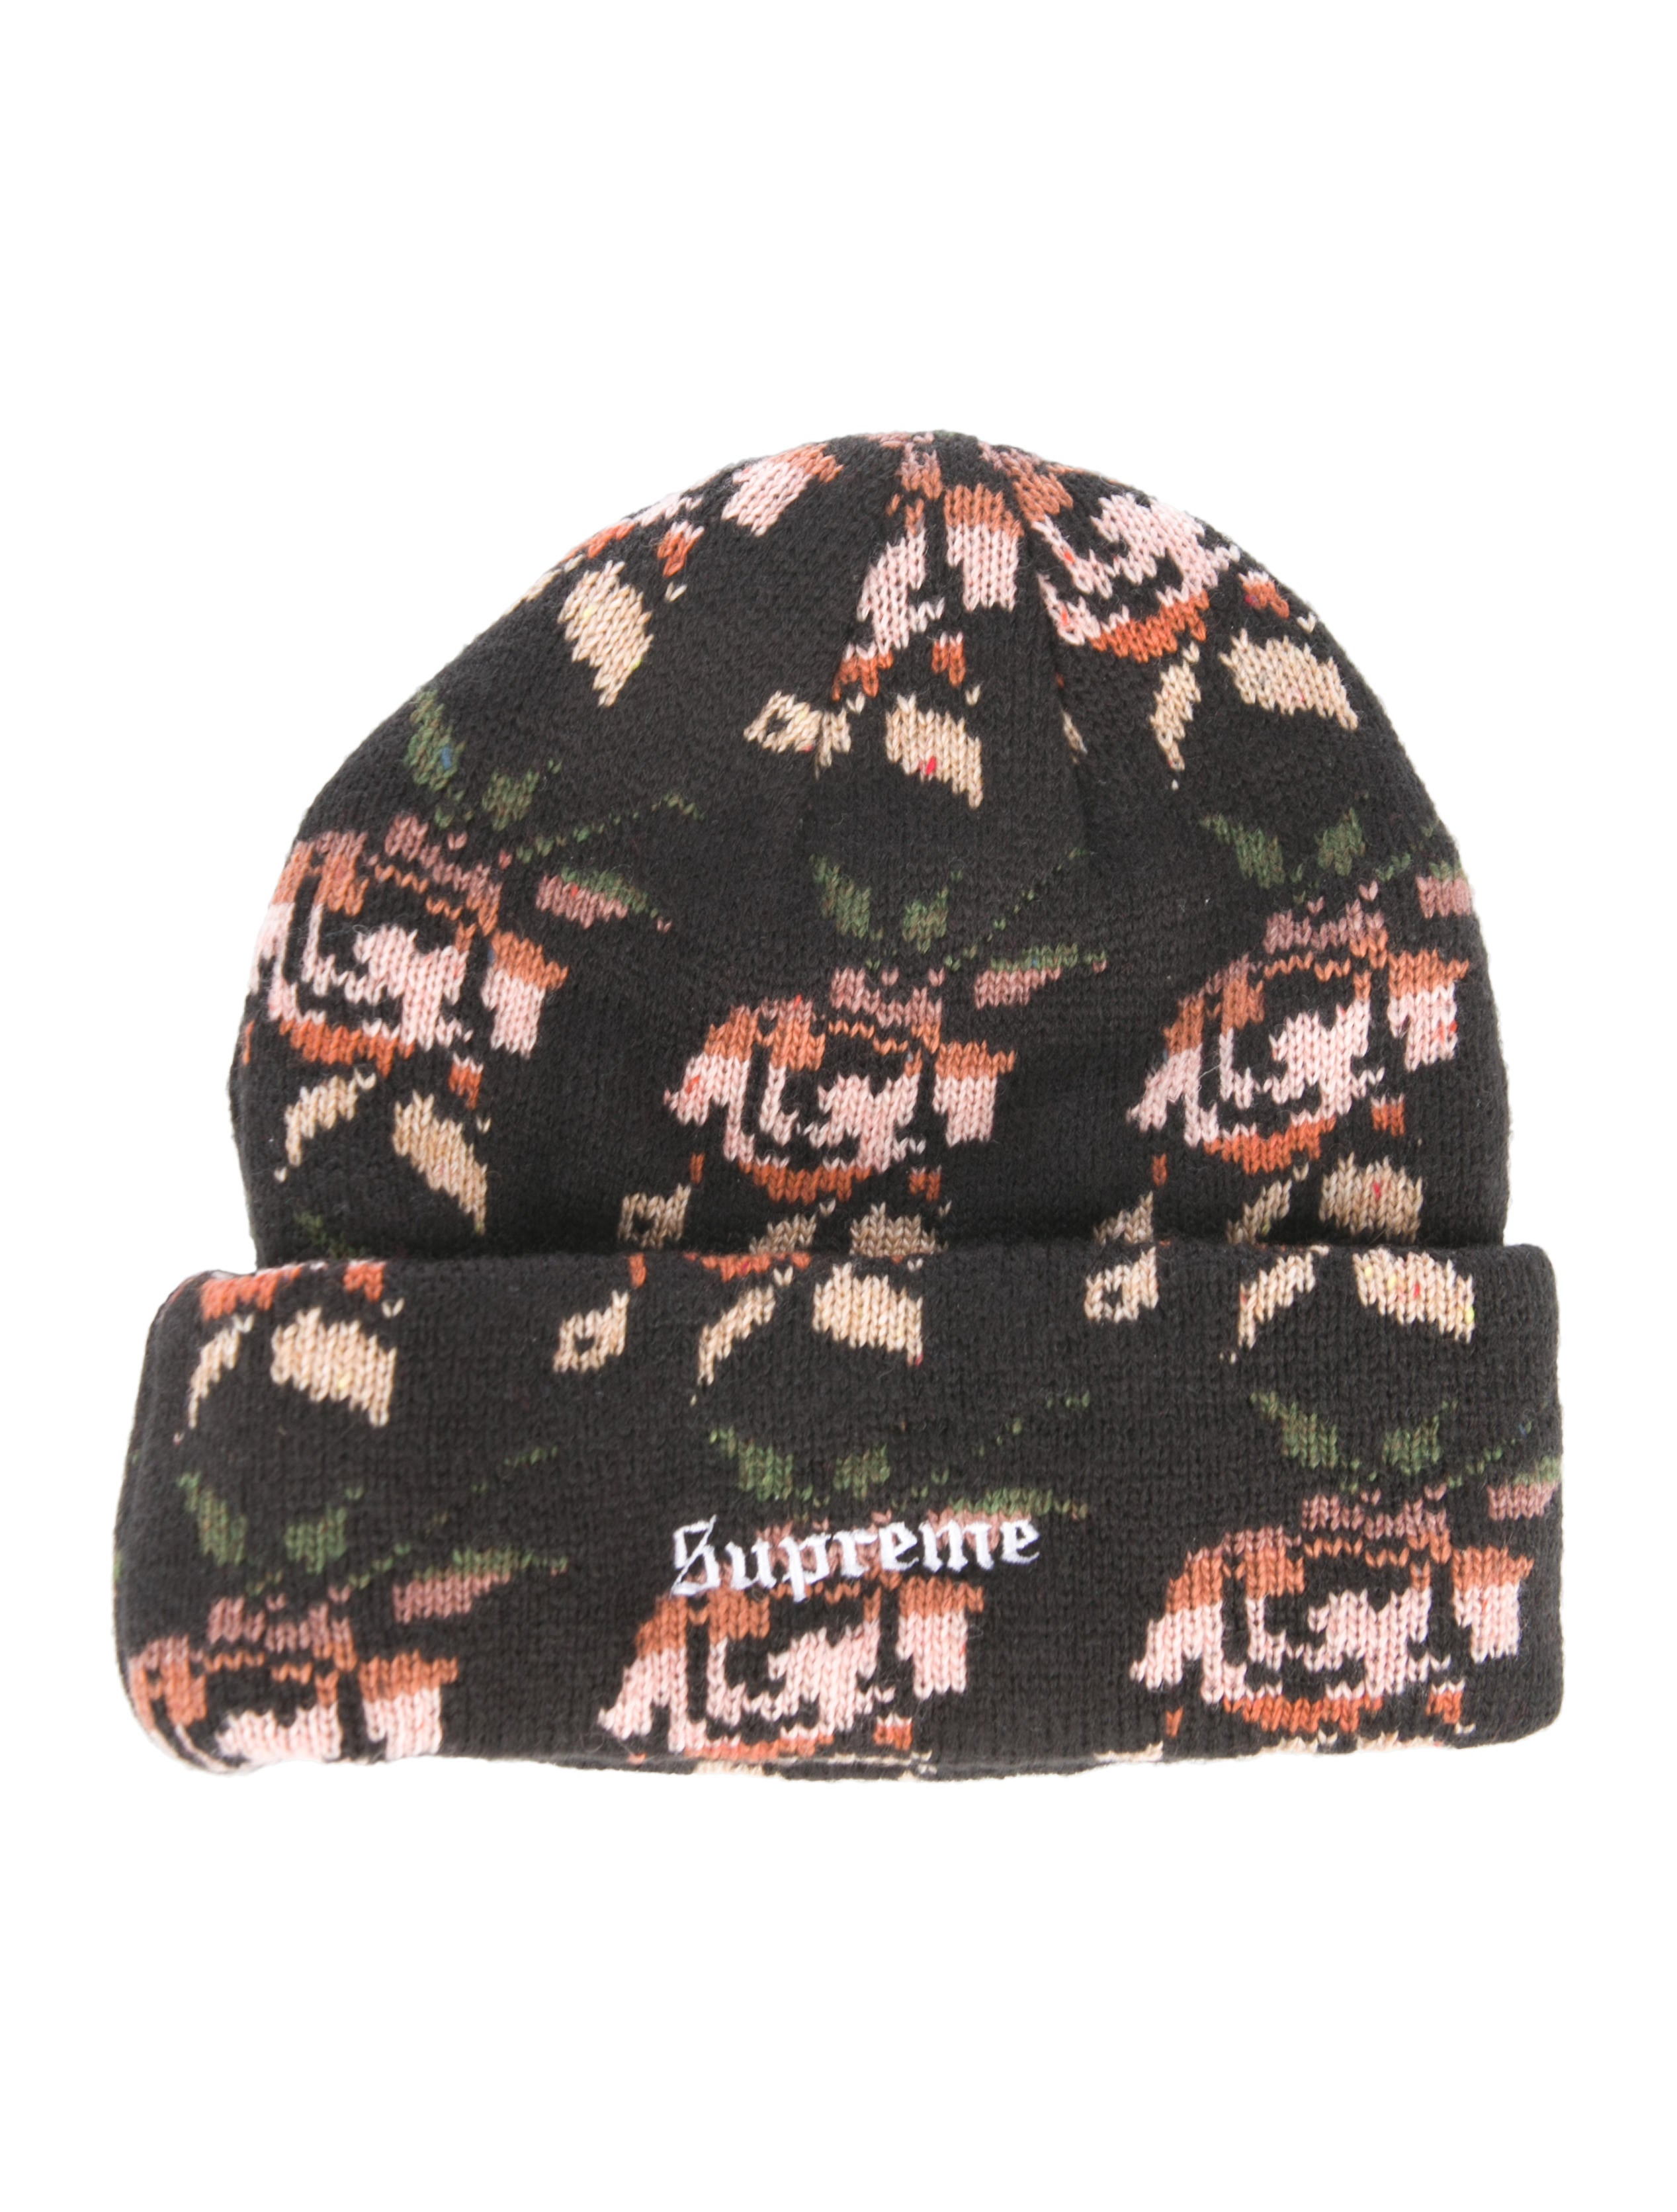 c36f08b4f9f16 Supreme 2018 Wool-Blend Rose Jacquard Beanie - Accessories ...